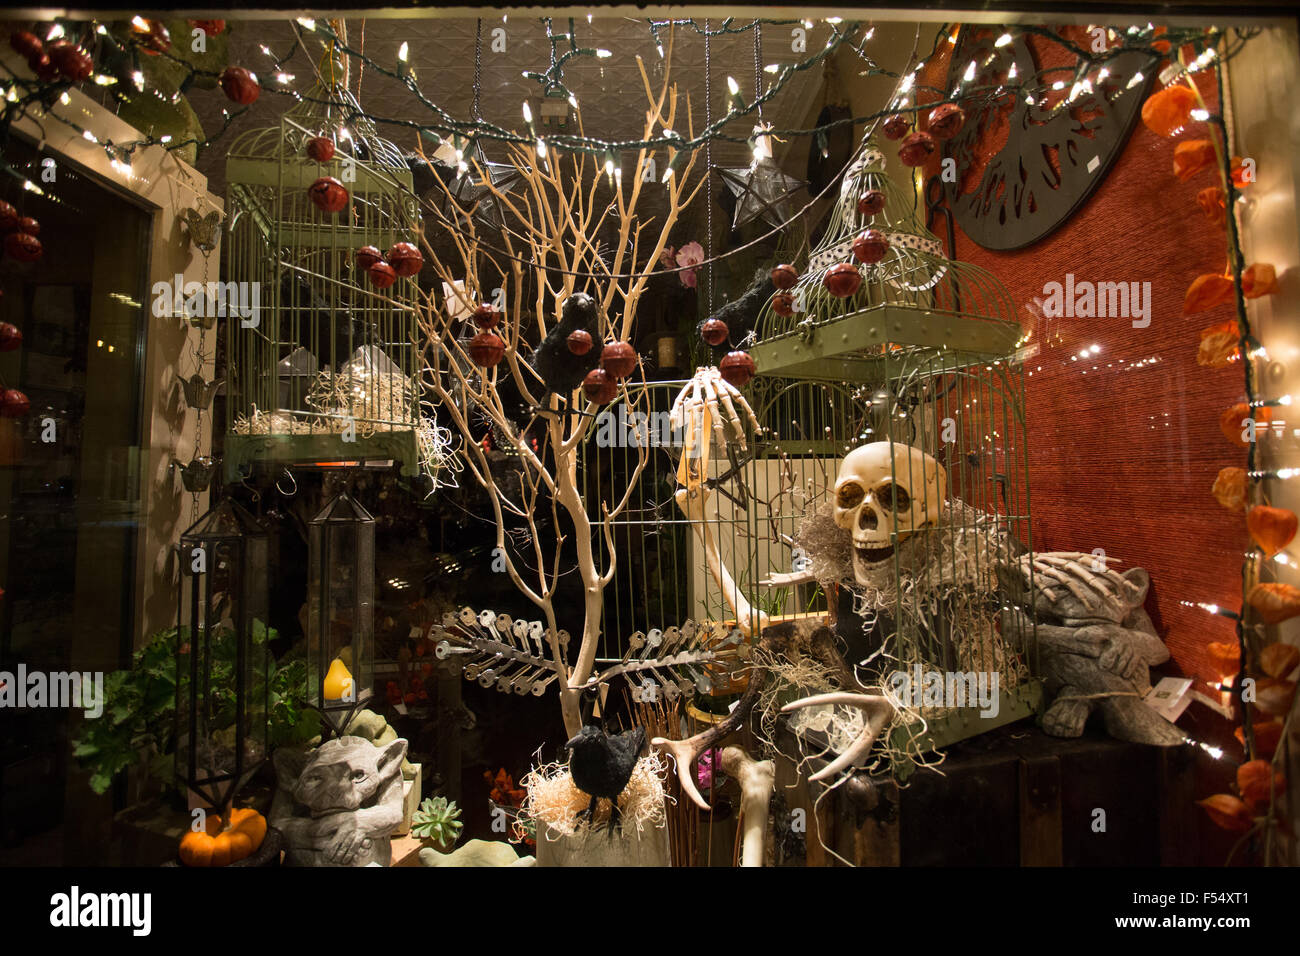 d coration halloween vitrine banque d 39 images photo stock 89233985 alamy. Black Bedroom Furniture Sets. Home Design Ideas